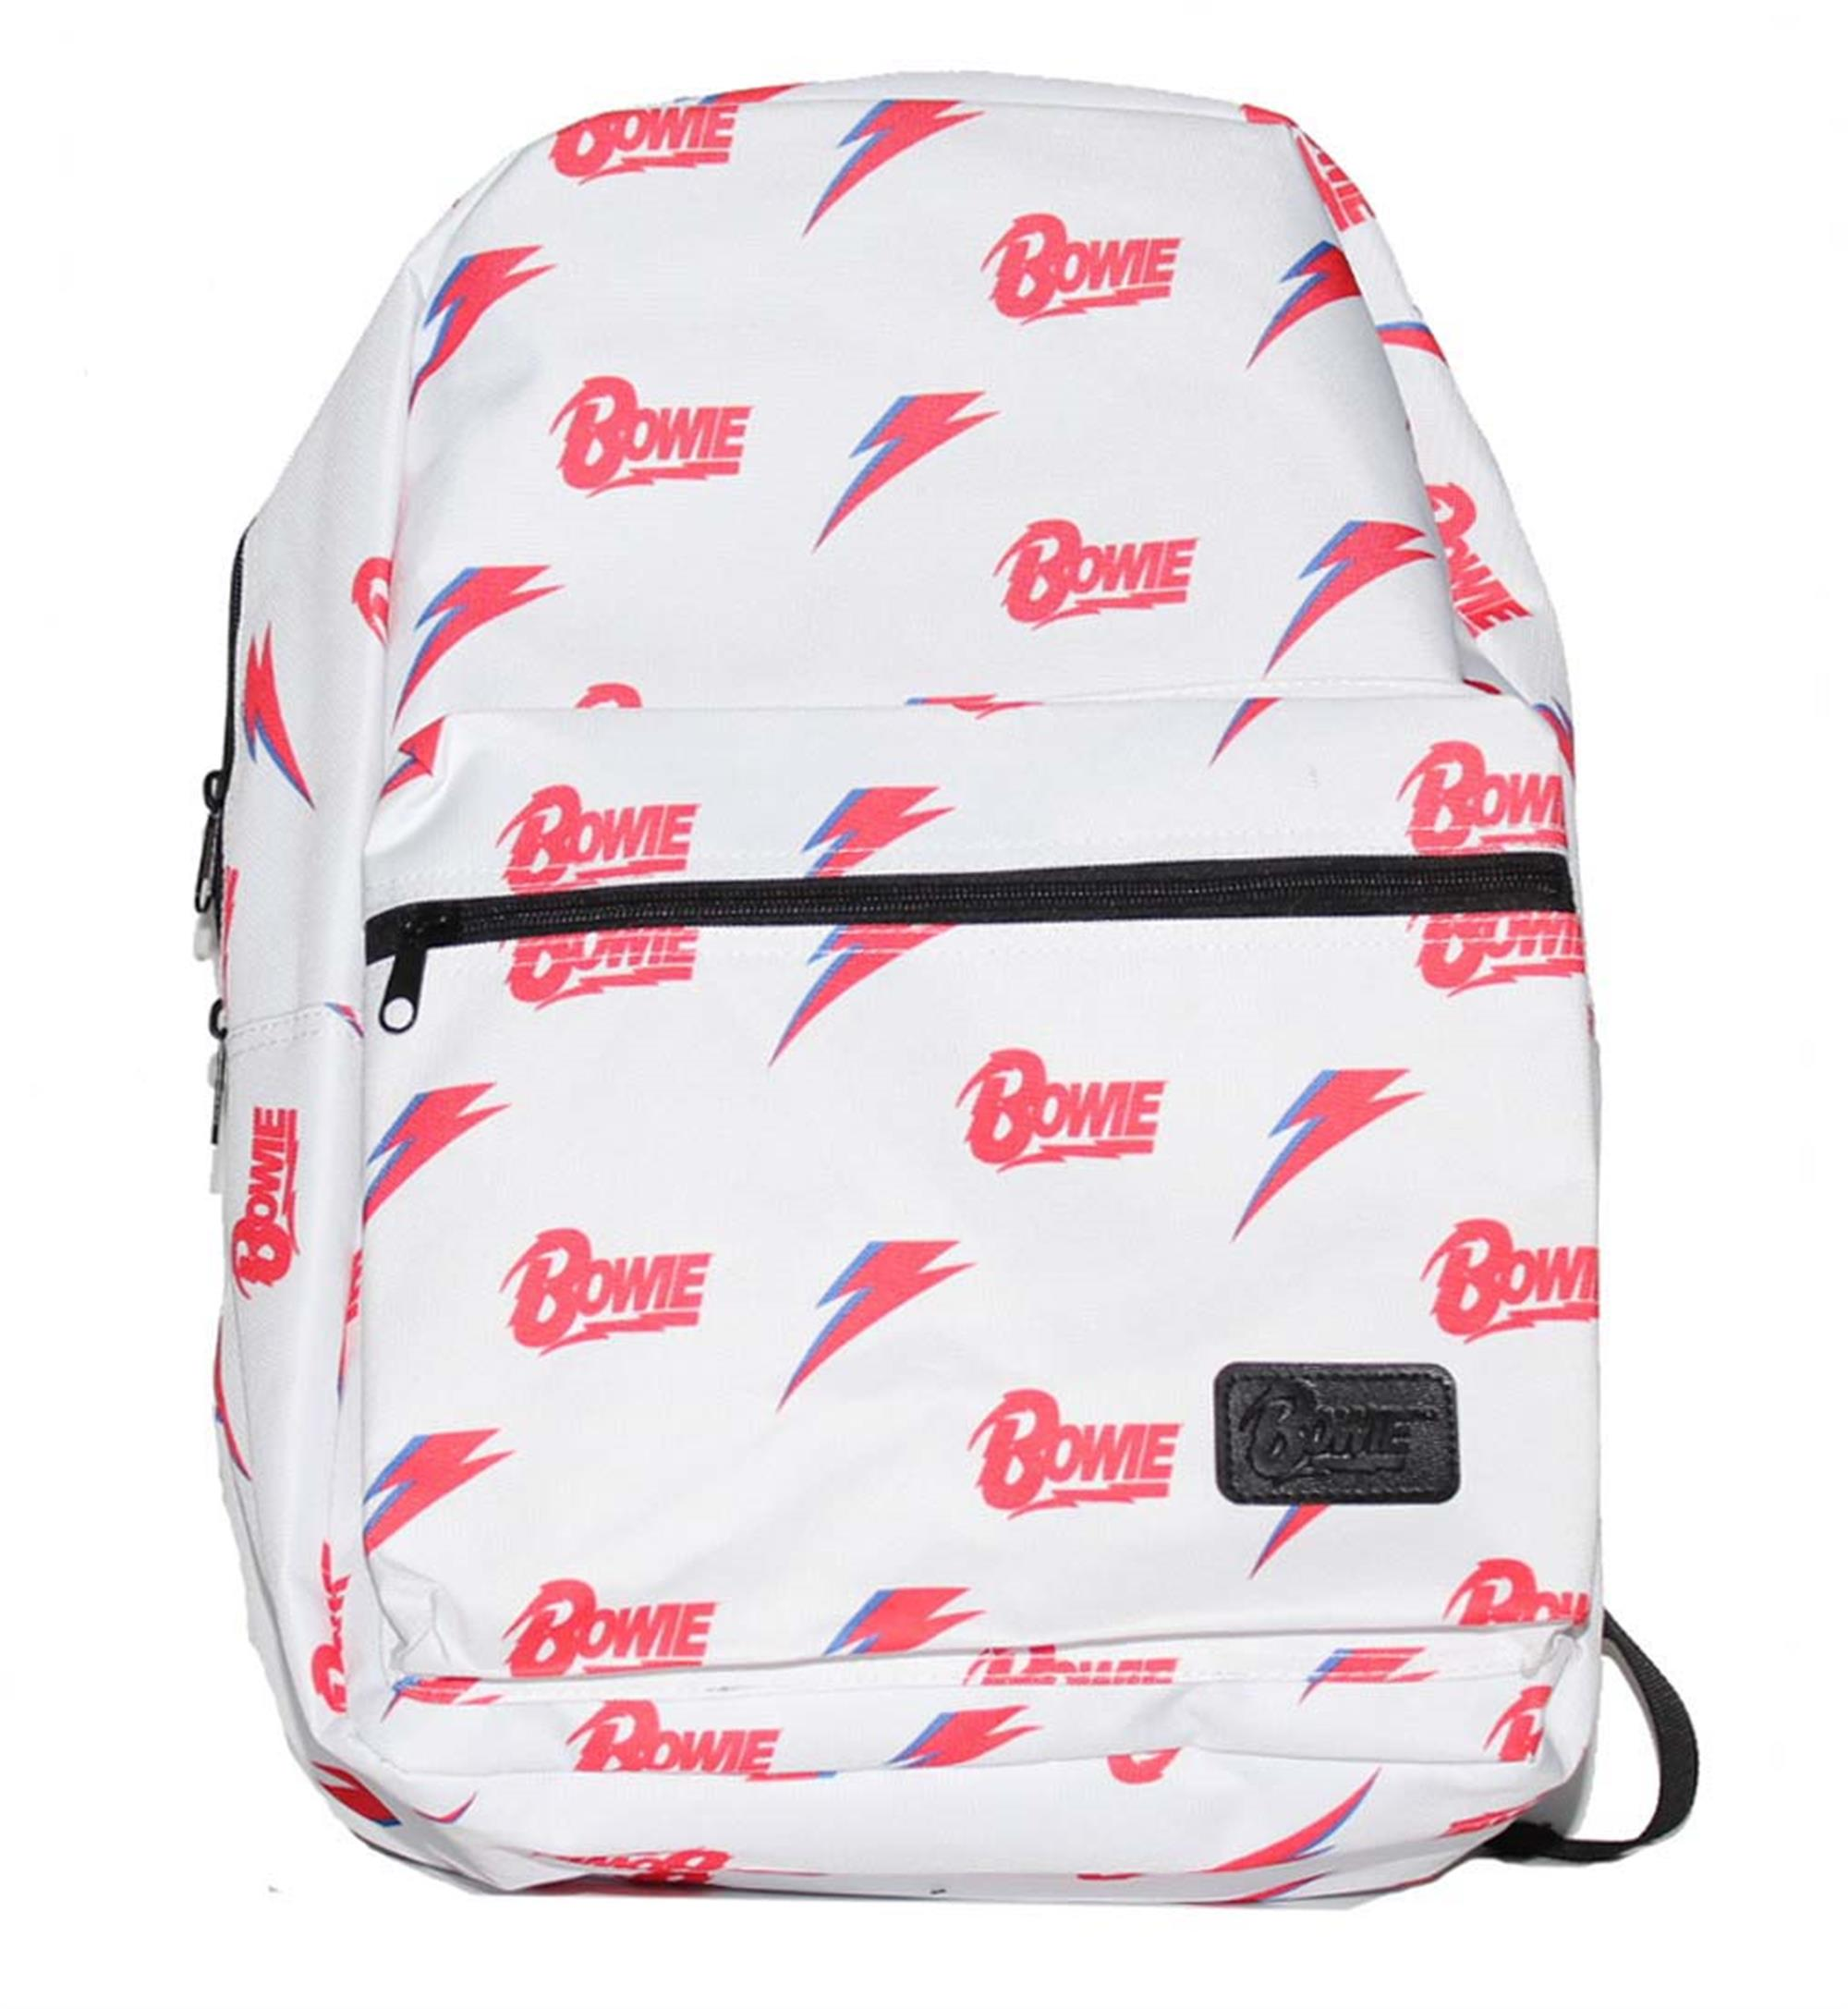 David Bowie All Over Print White Backpack